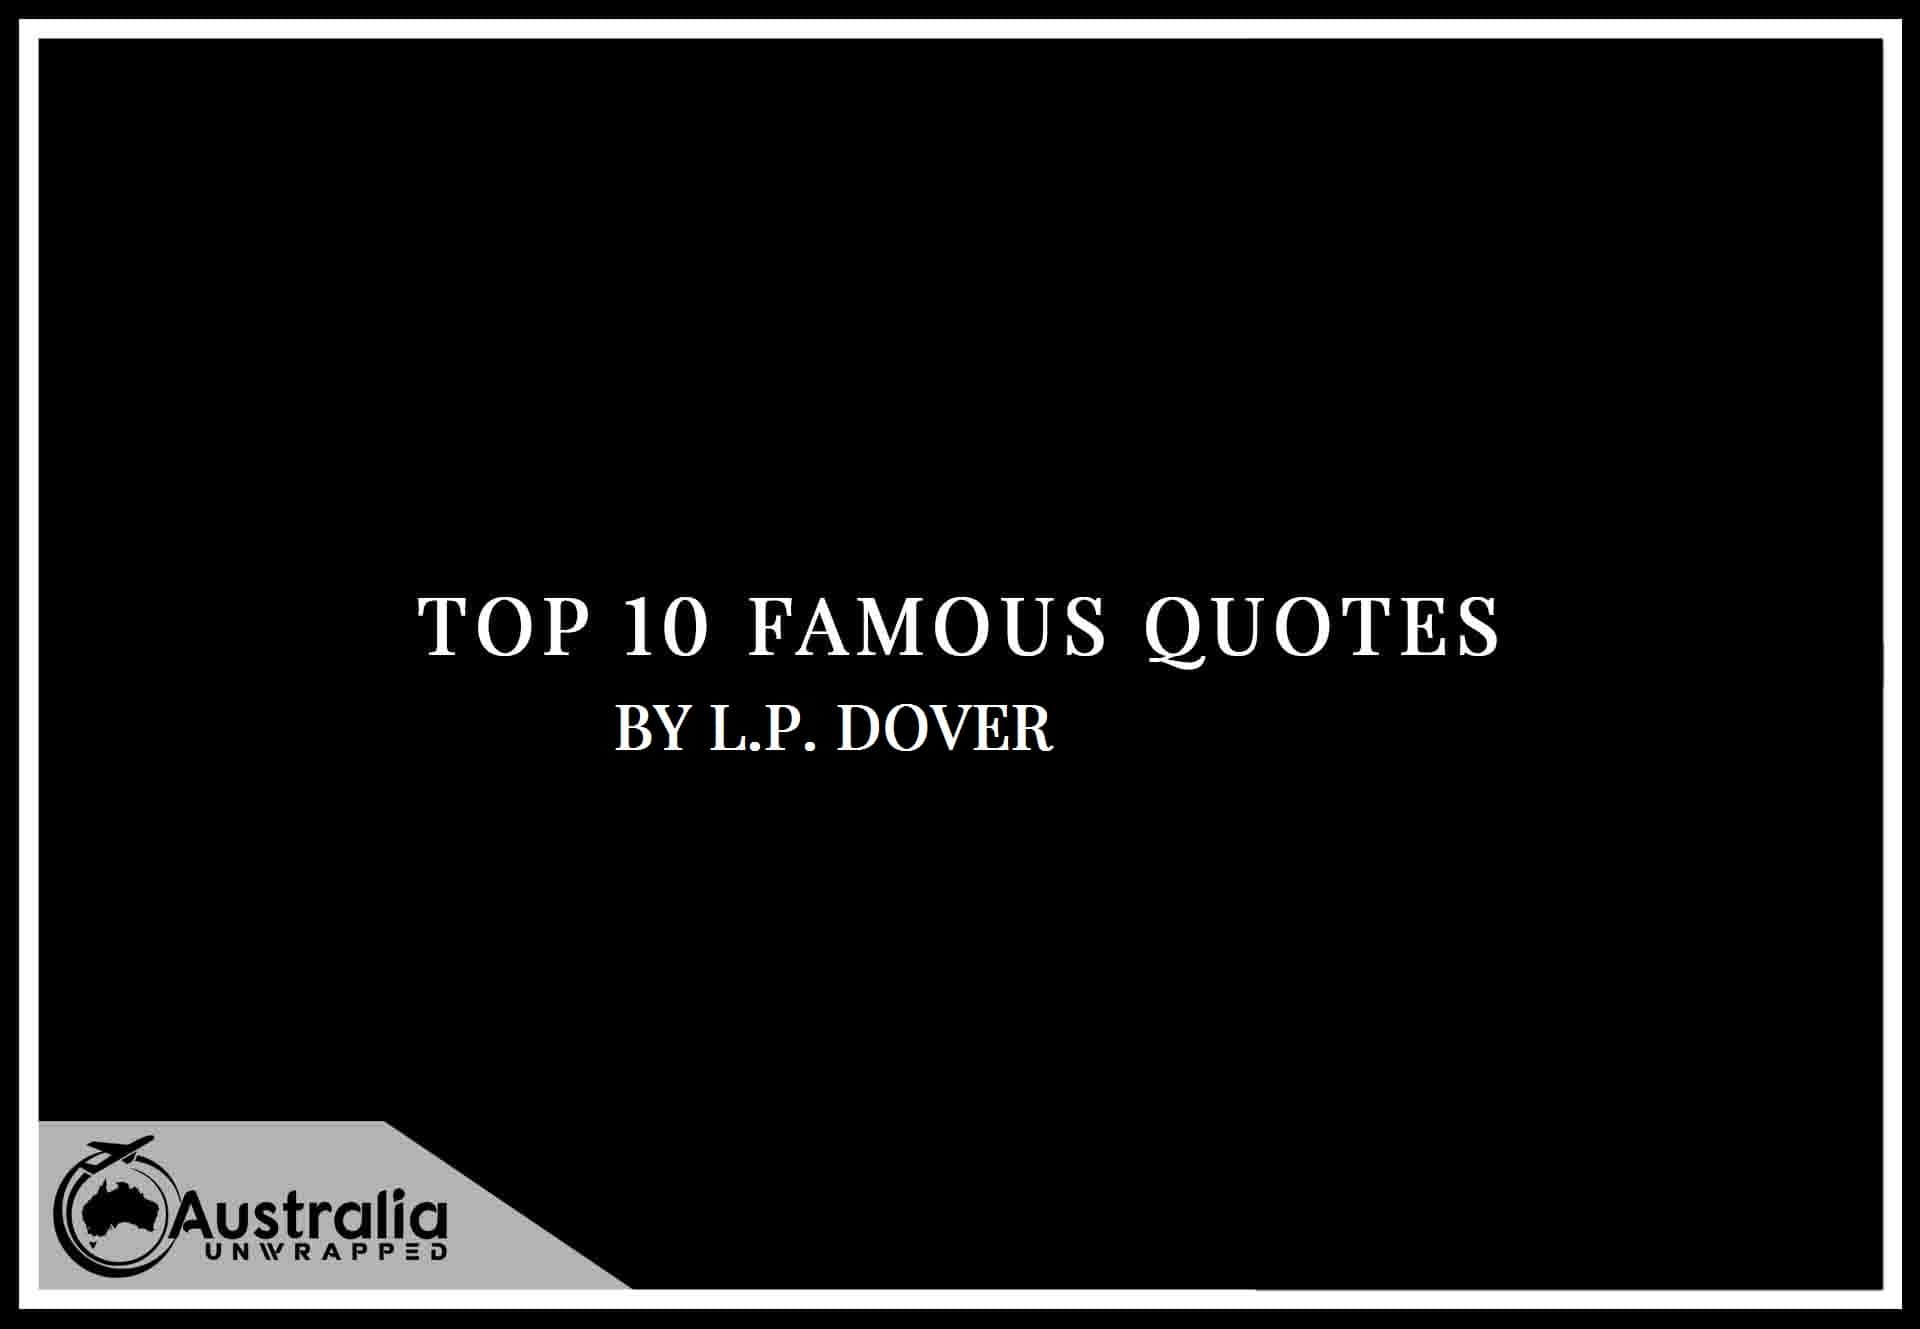 L.P. Dover's Top 10 Popular and Famous Quotes